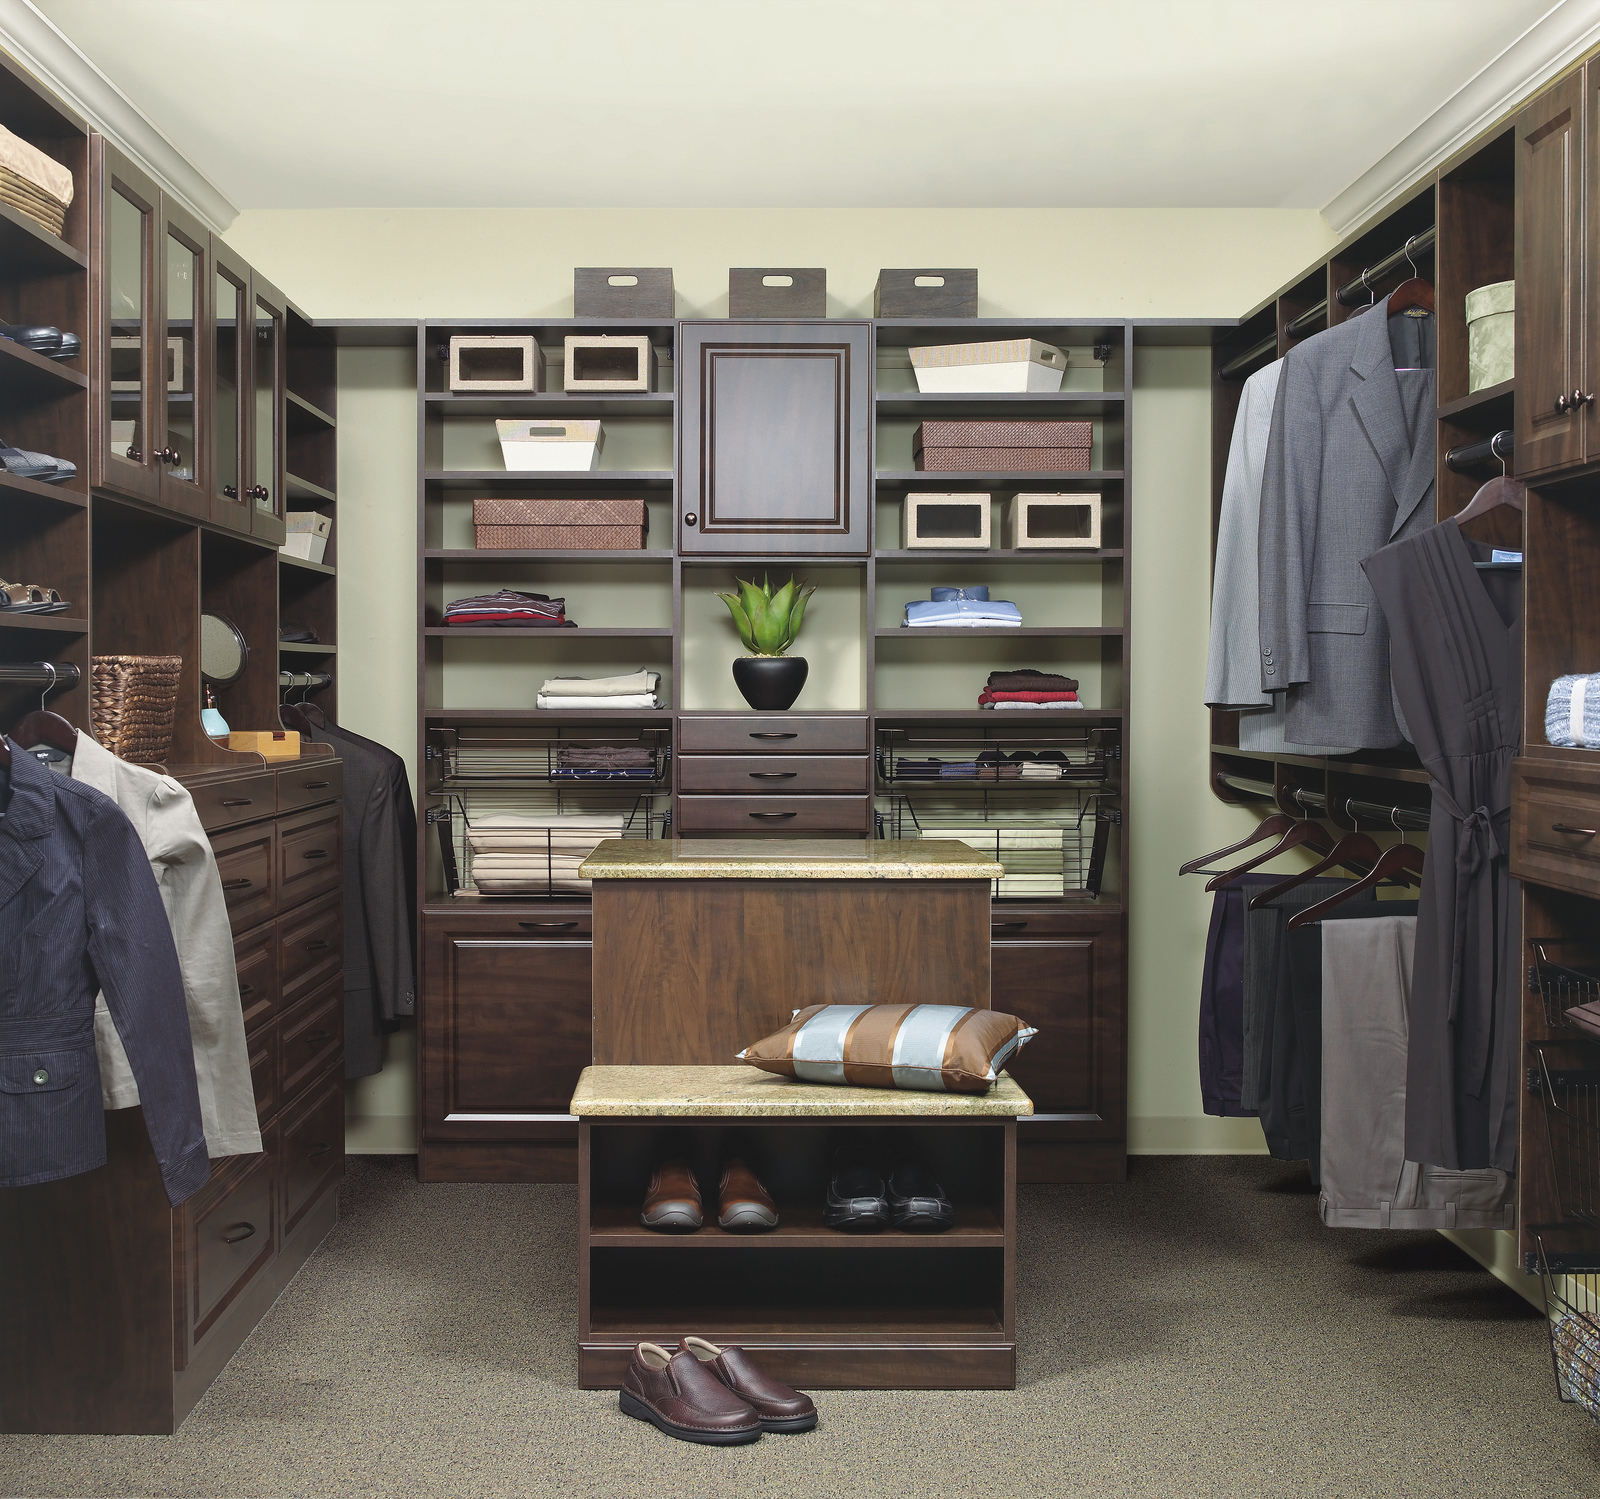 Jacksonville Custom Closets Murphy Beds  More  More Space Place